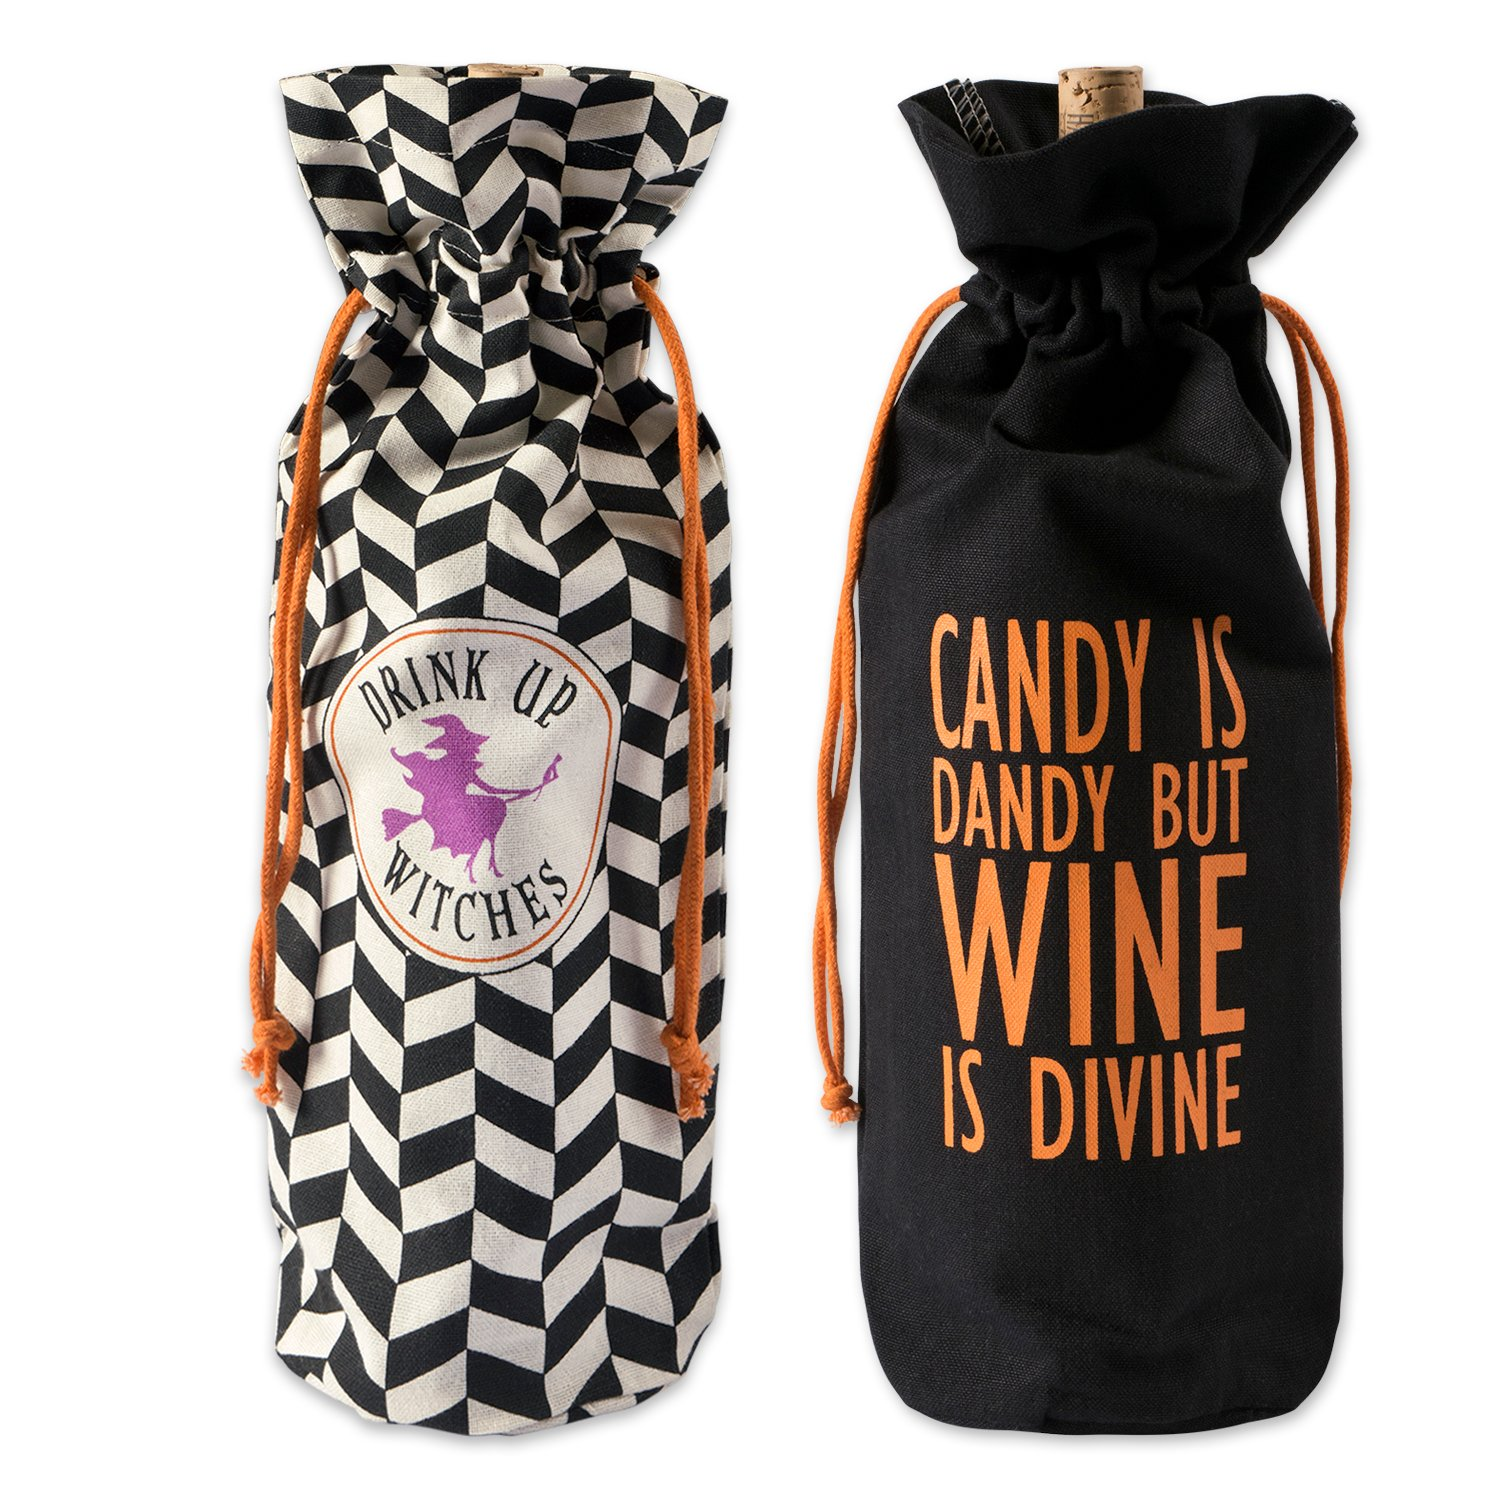 DII Cotton Halloween Reusable Drawstring Gift Bag, 6''(W)x 14''(H) x 4''(Dia), Set of 2 for  Wine, Beverages, Gifts, Holiday Party Accessory-All Hallows Eve by DII